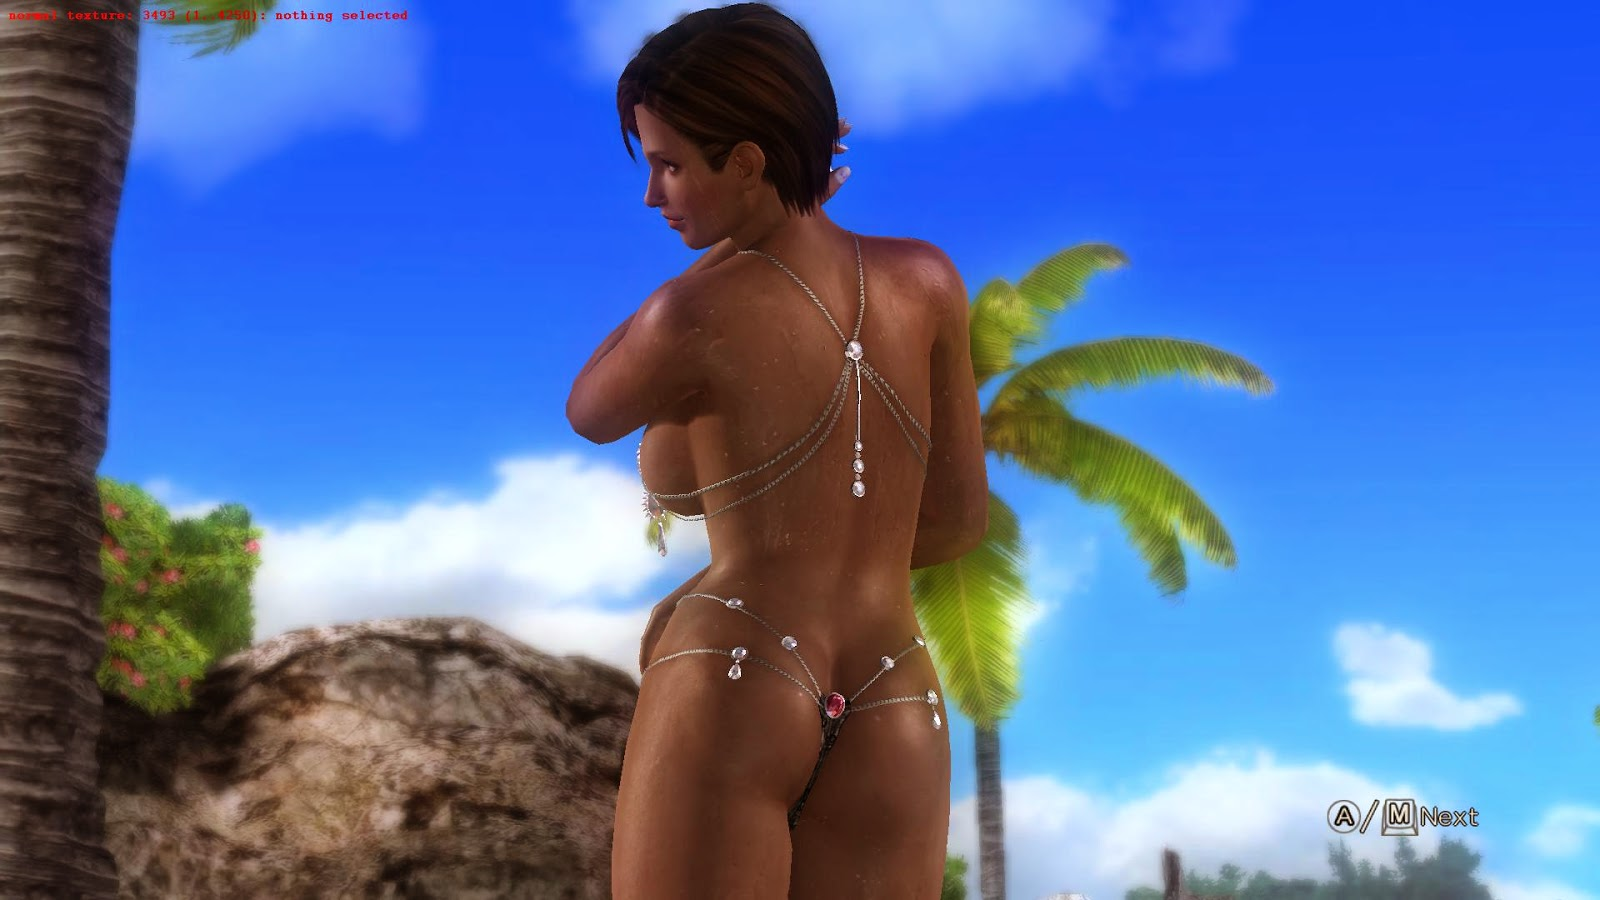 doa5-nude-mod---lisa-venus-no-feathers,DOA5 Nude Mod - Lisa Venus No Feathers,Game, Game Offline, Best Game, GamePlay, game nice, game good, mods game, game mods, mods, game hardcode, cheat game, game trick, game sex, games, game bet, download, downgame, game hot - Mod Dead Or Alive 5 Last Round Free